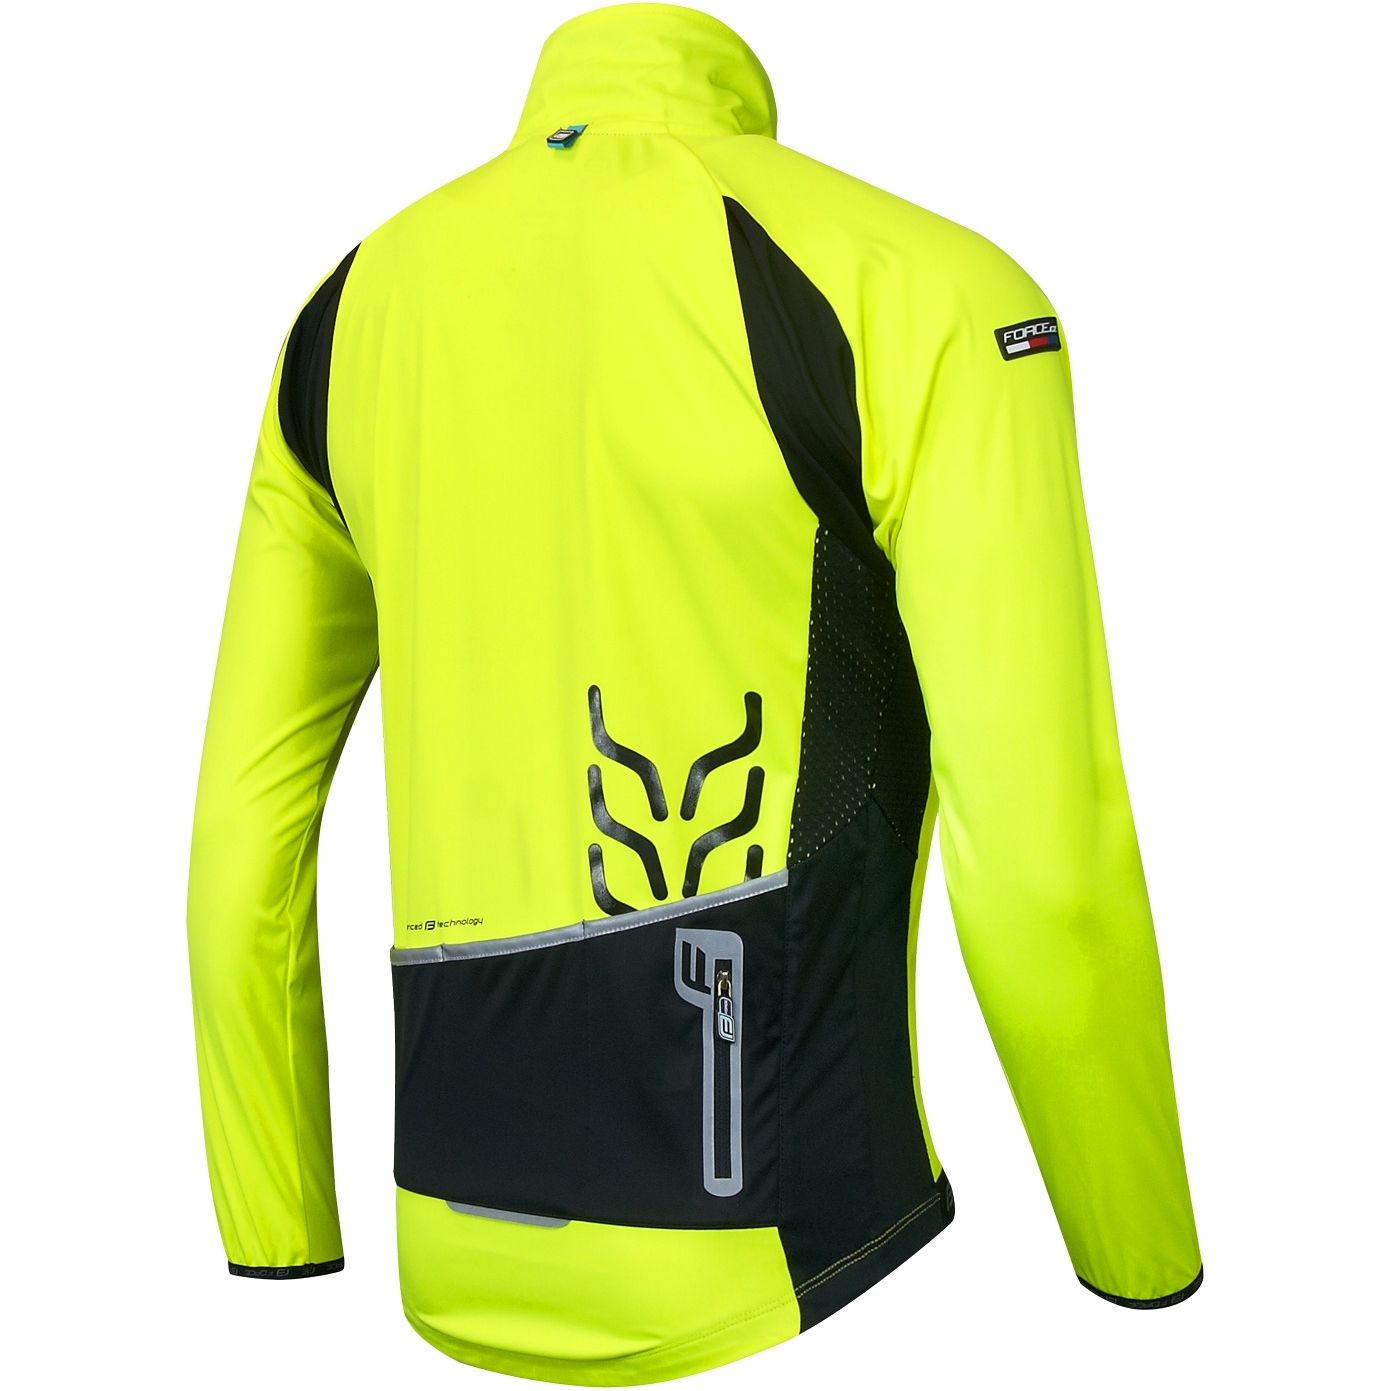 2014f9fb6 Force X80 Softshell cycling jacket yellow fluo (90006). Previous